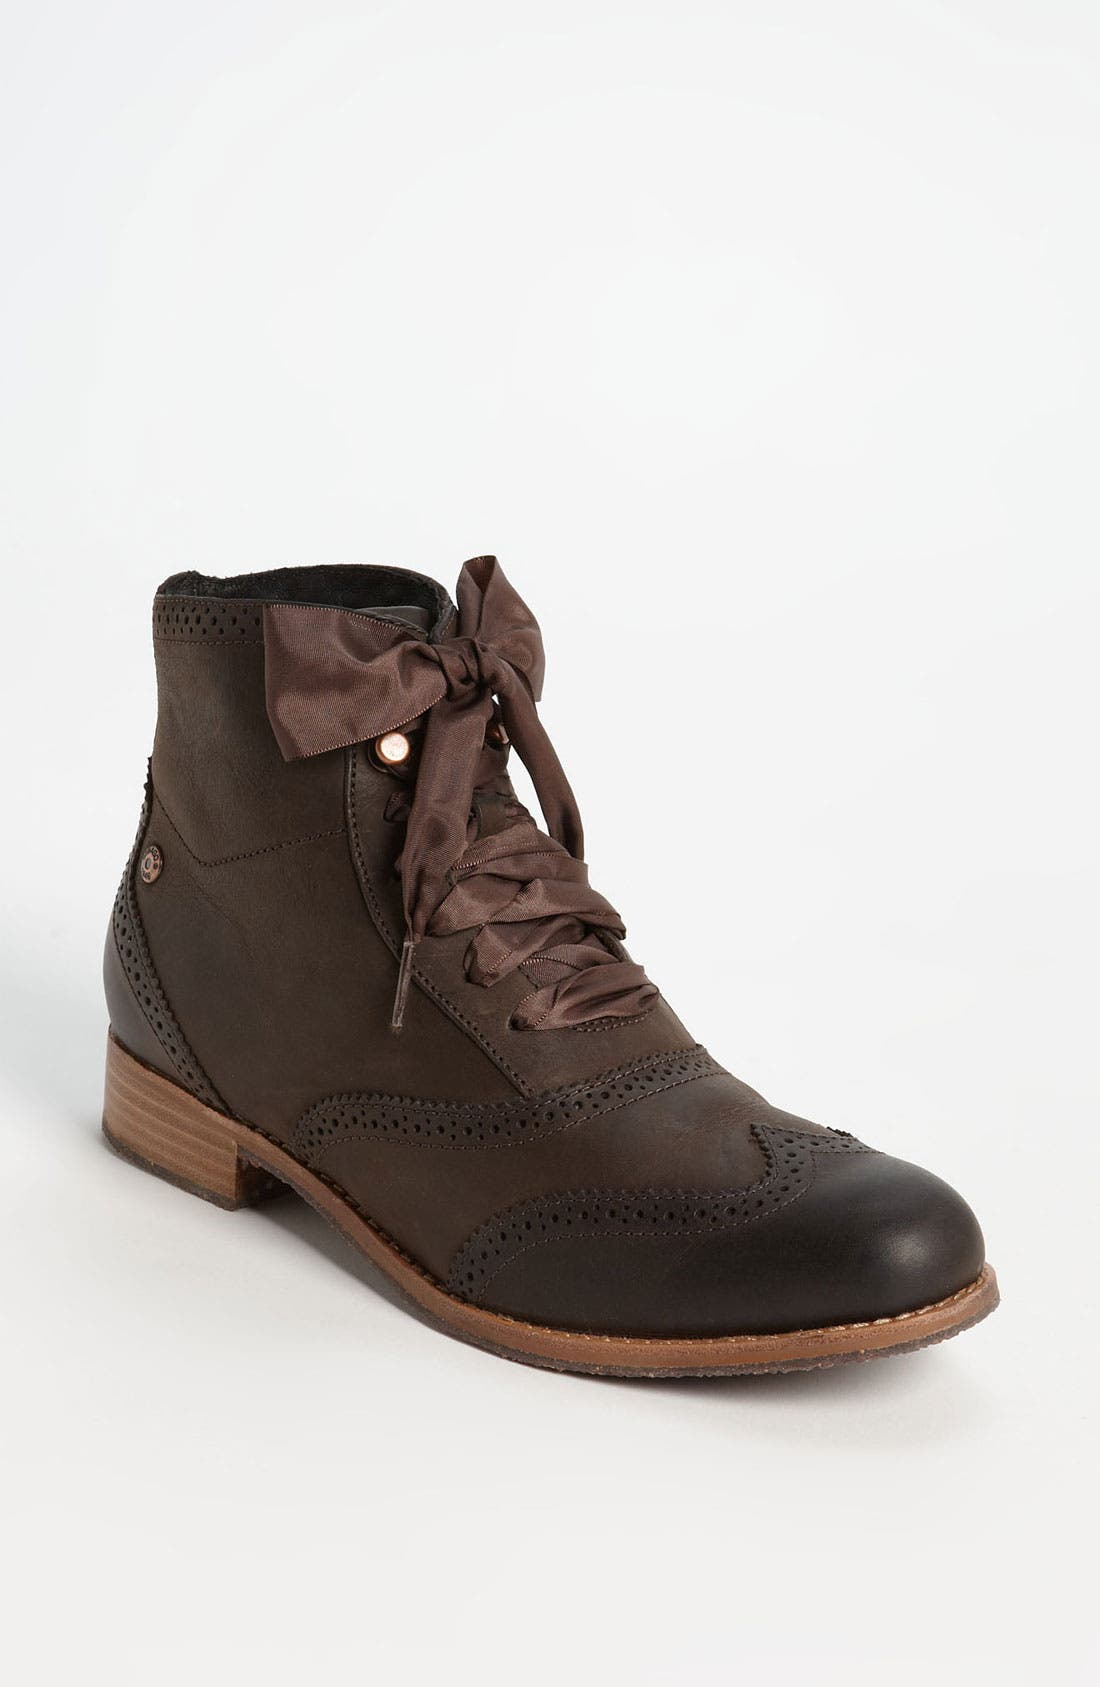 Alternate Image 1 Selected - Sebago 'Claremont' Boot